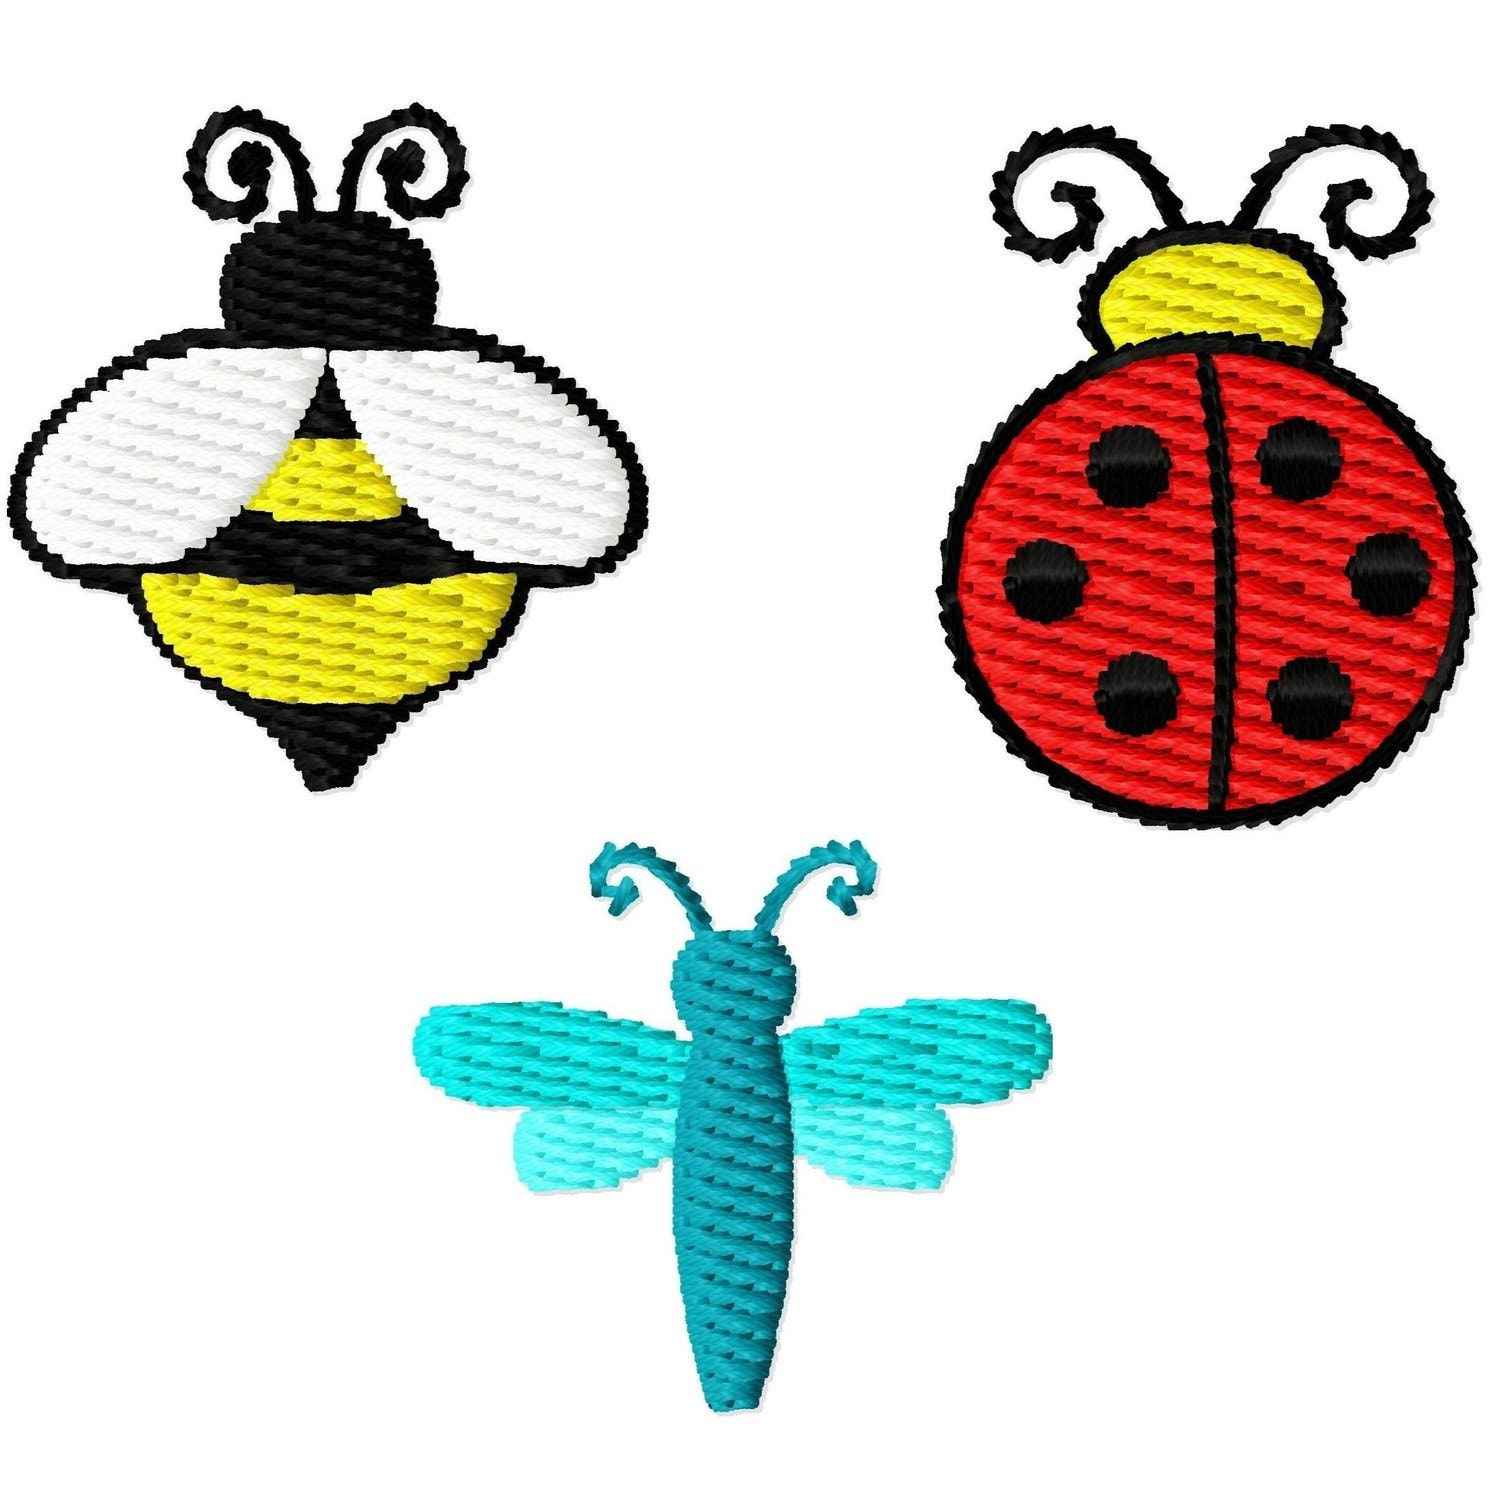 Bumble bee embroidery designs car pictures - Bumble Bee Embroidery Designs Machine Embroidery Designs Digitizing Dolls 1 Inch Mini Design Set Of 3 By